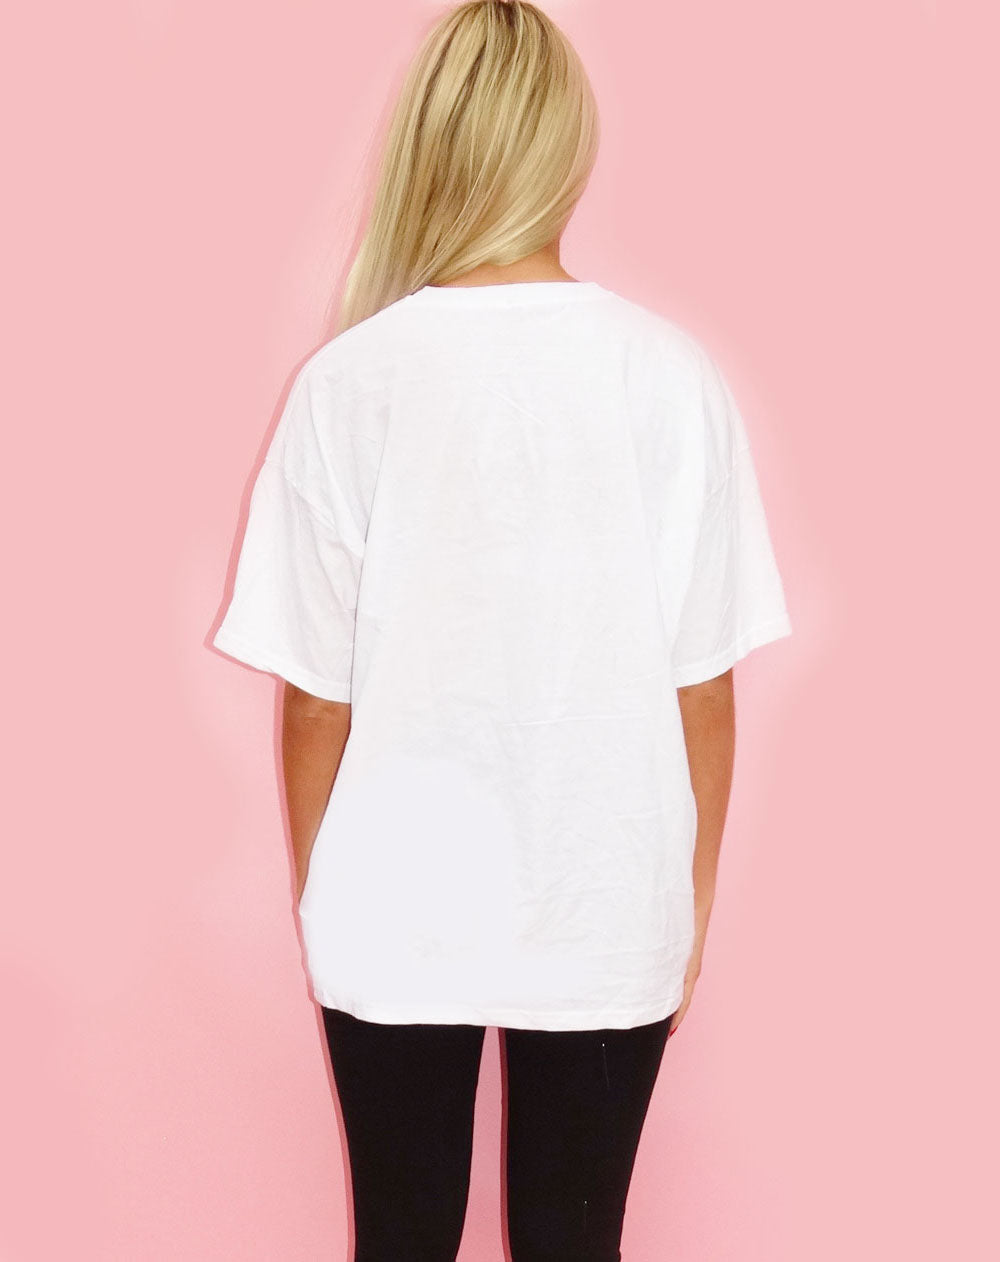 Lip Graphic Tshirt in White